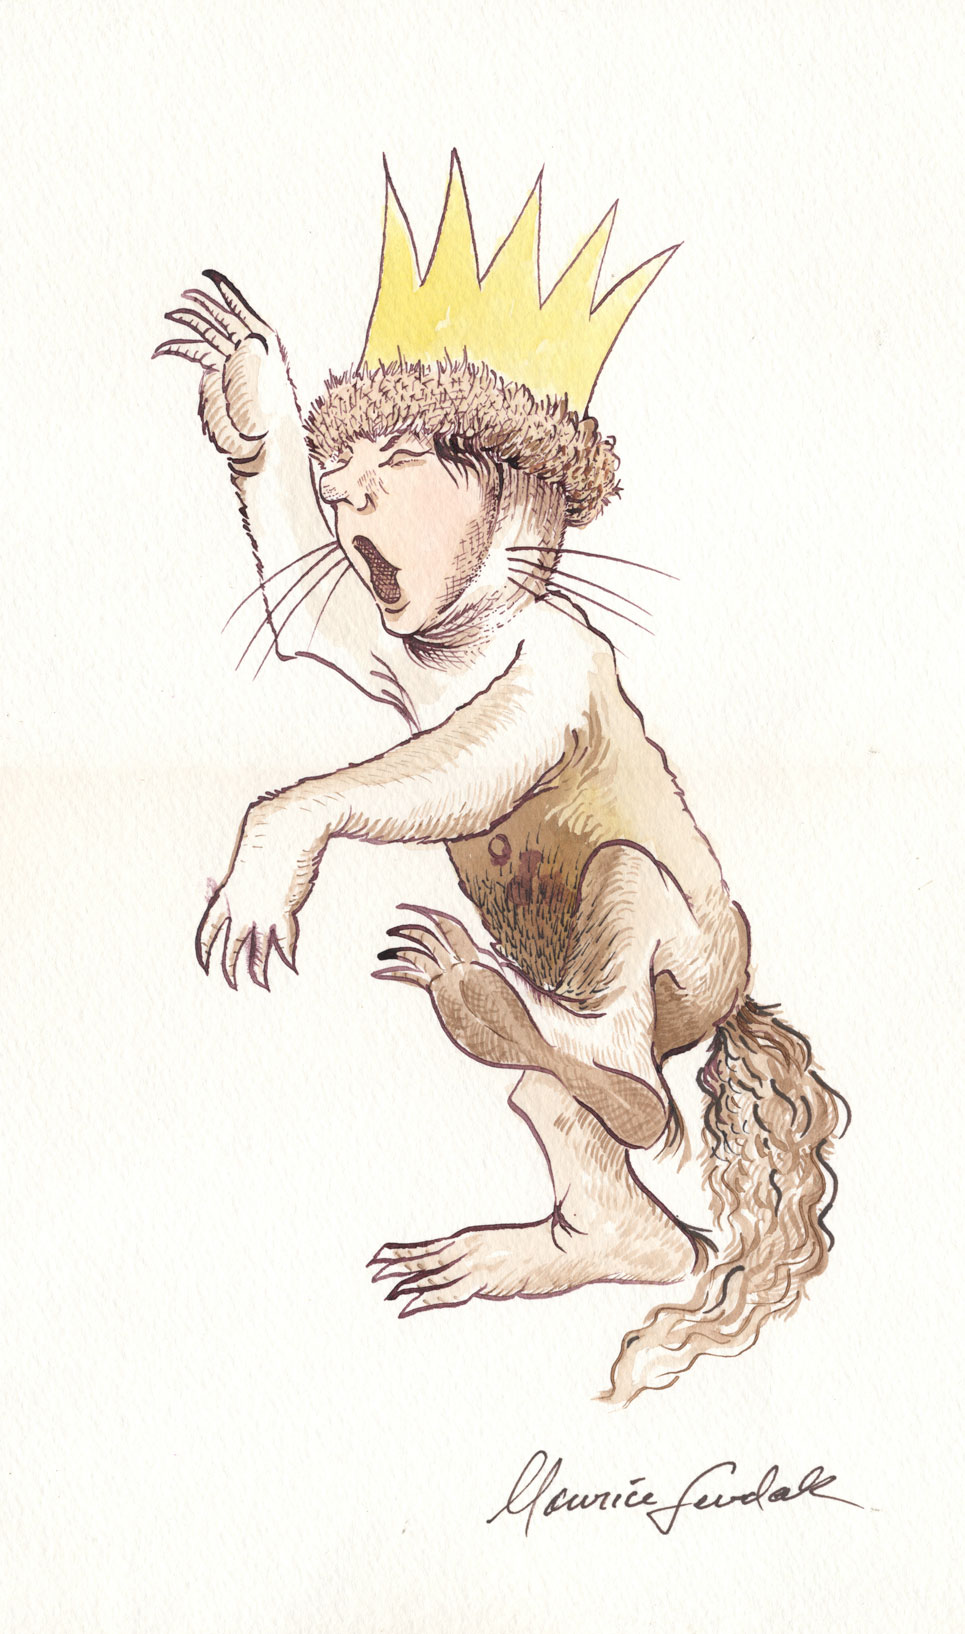 Maurice Sendak: 50 Years, 50 Works, 50 Reasons @ Walt Disney Family Museum, SF: 23.WDFM_Sendak_KingMax.jpg